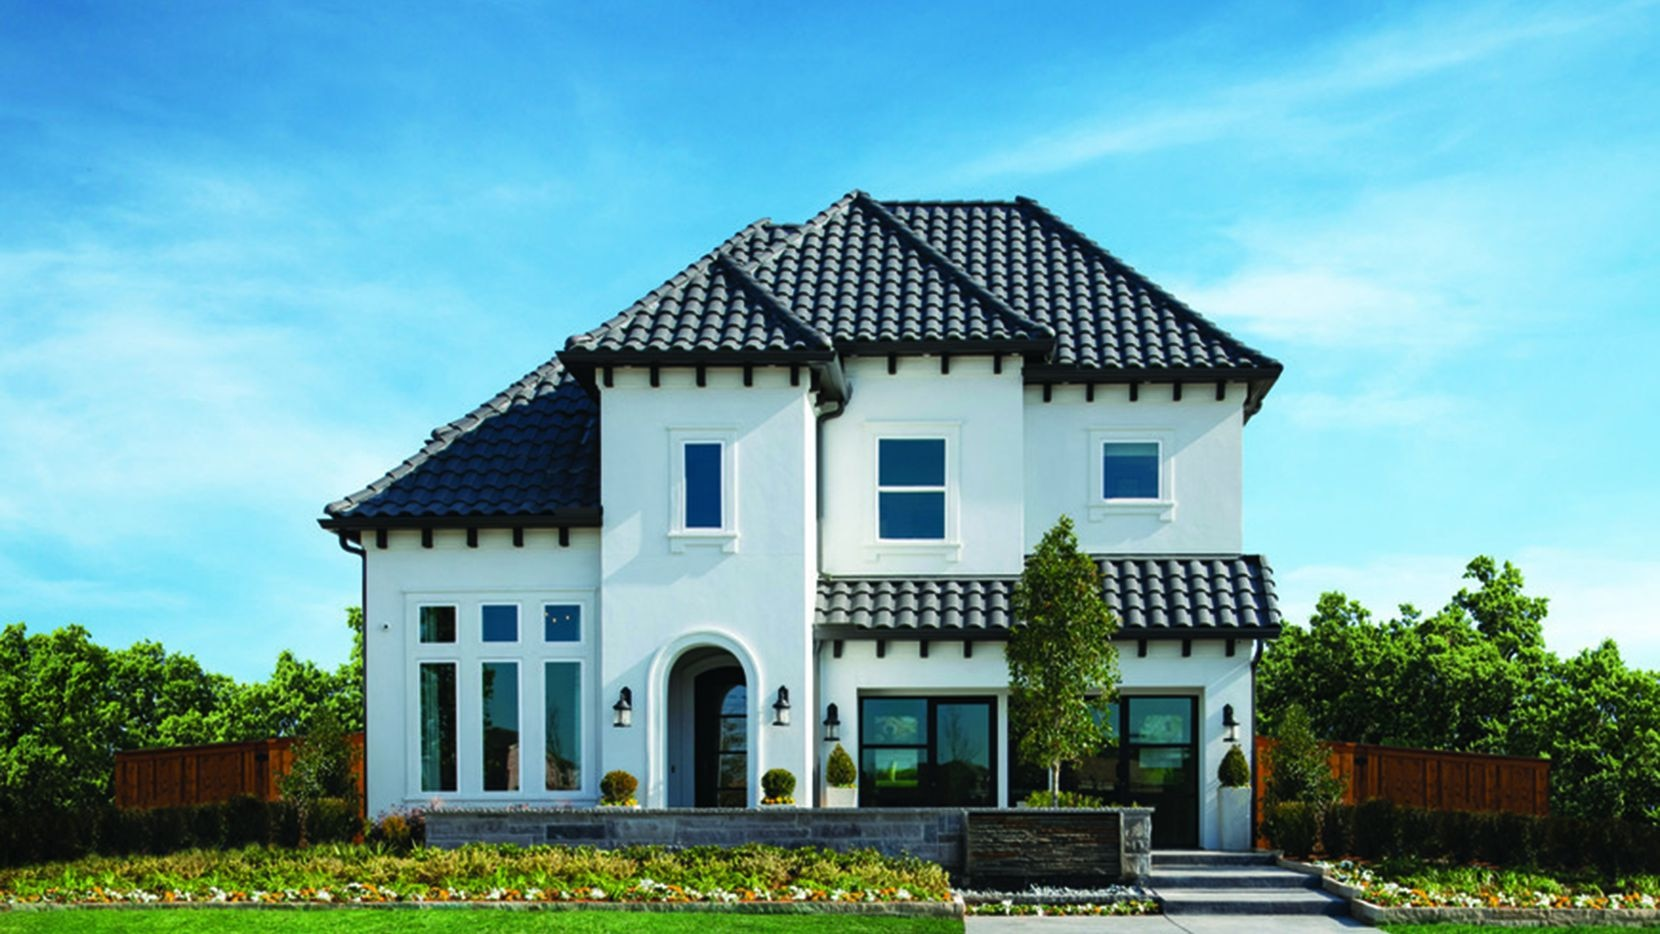 Toll Brothers offers limited-time incentives on award-winning designs in 18 DFW communities through Feb. 17.